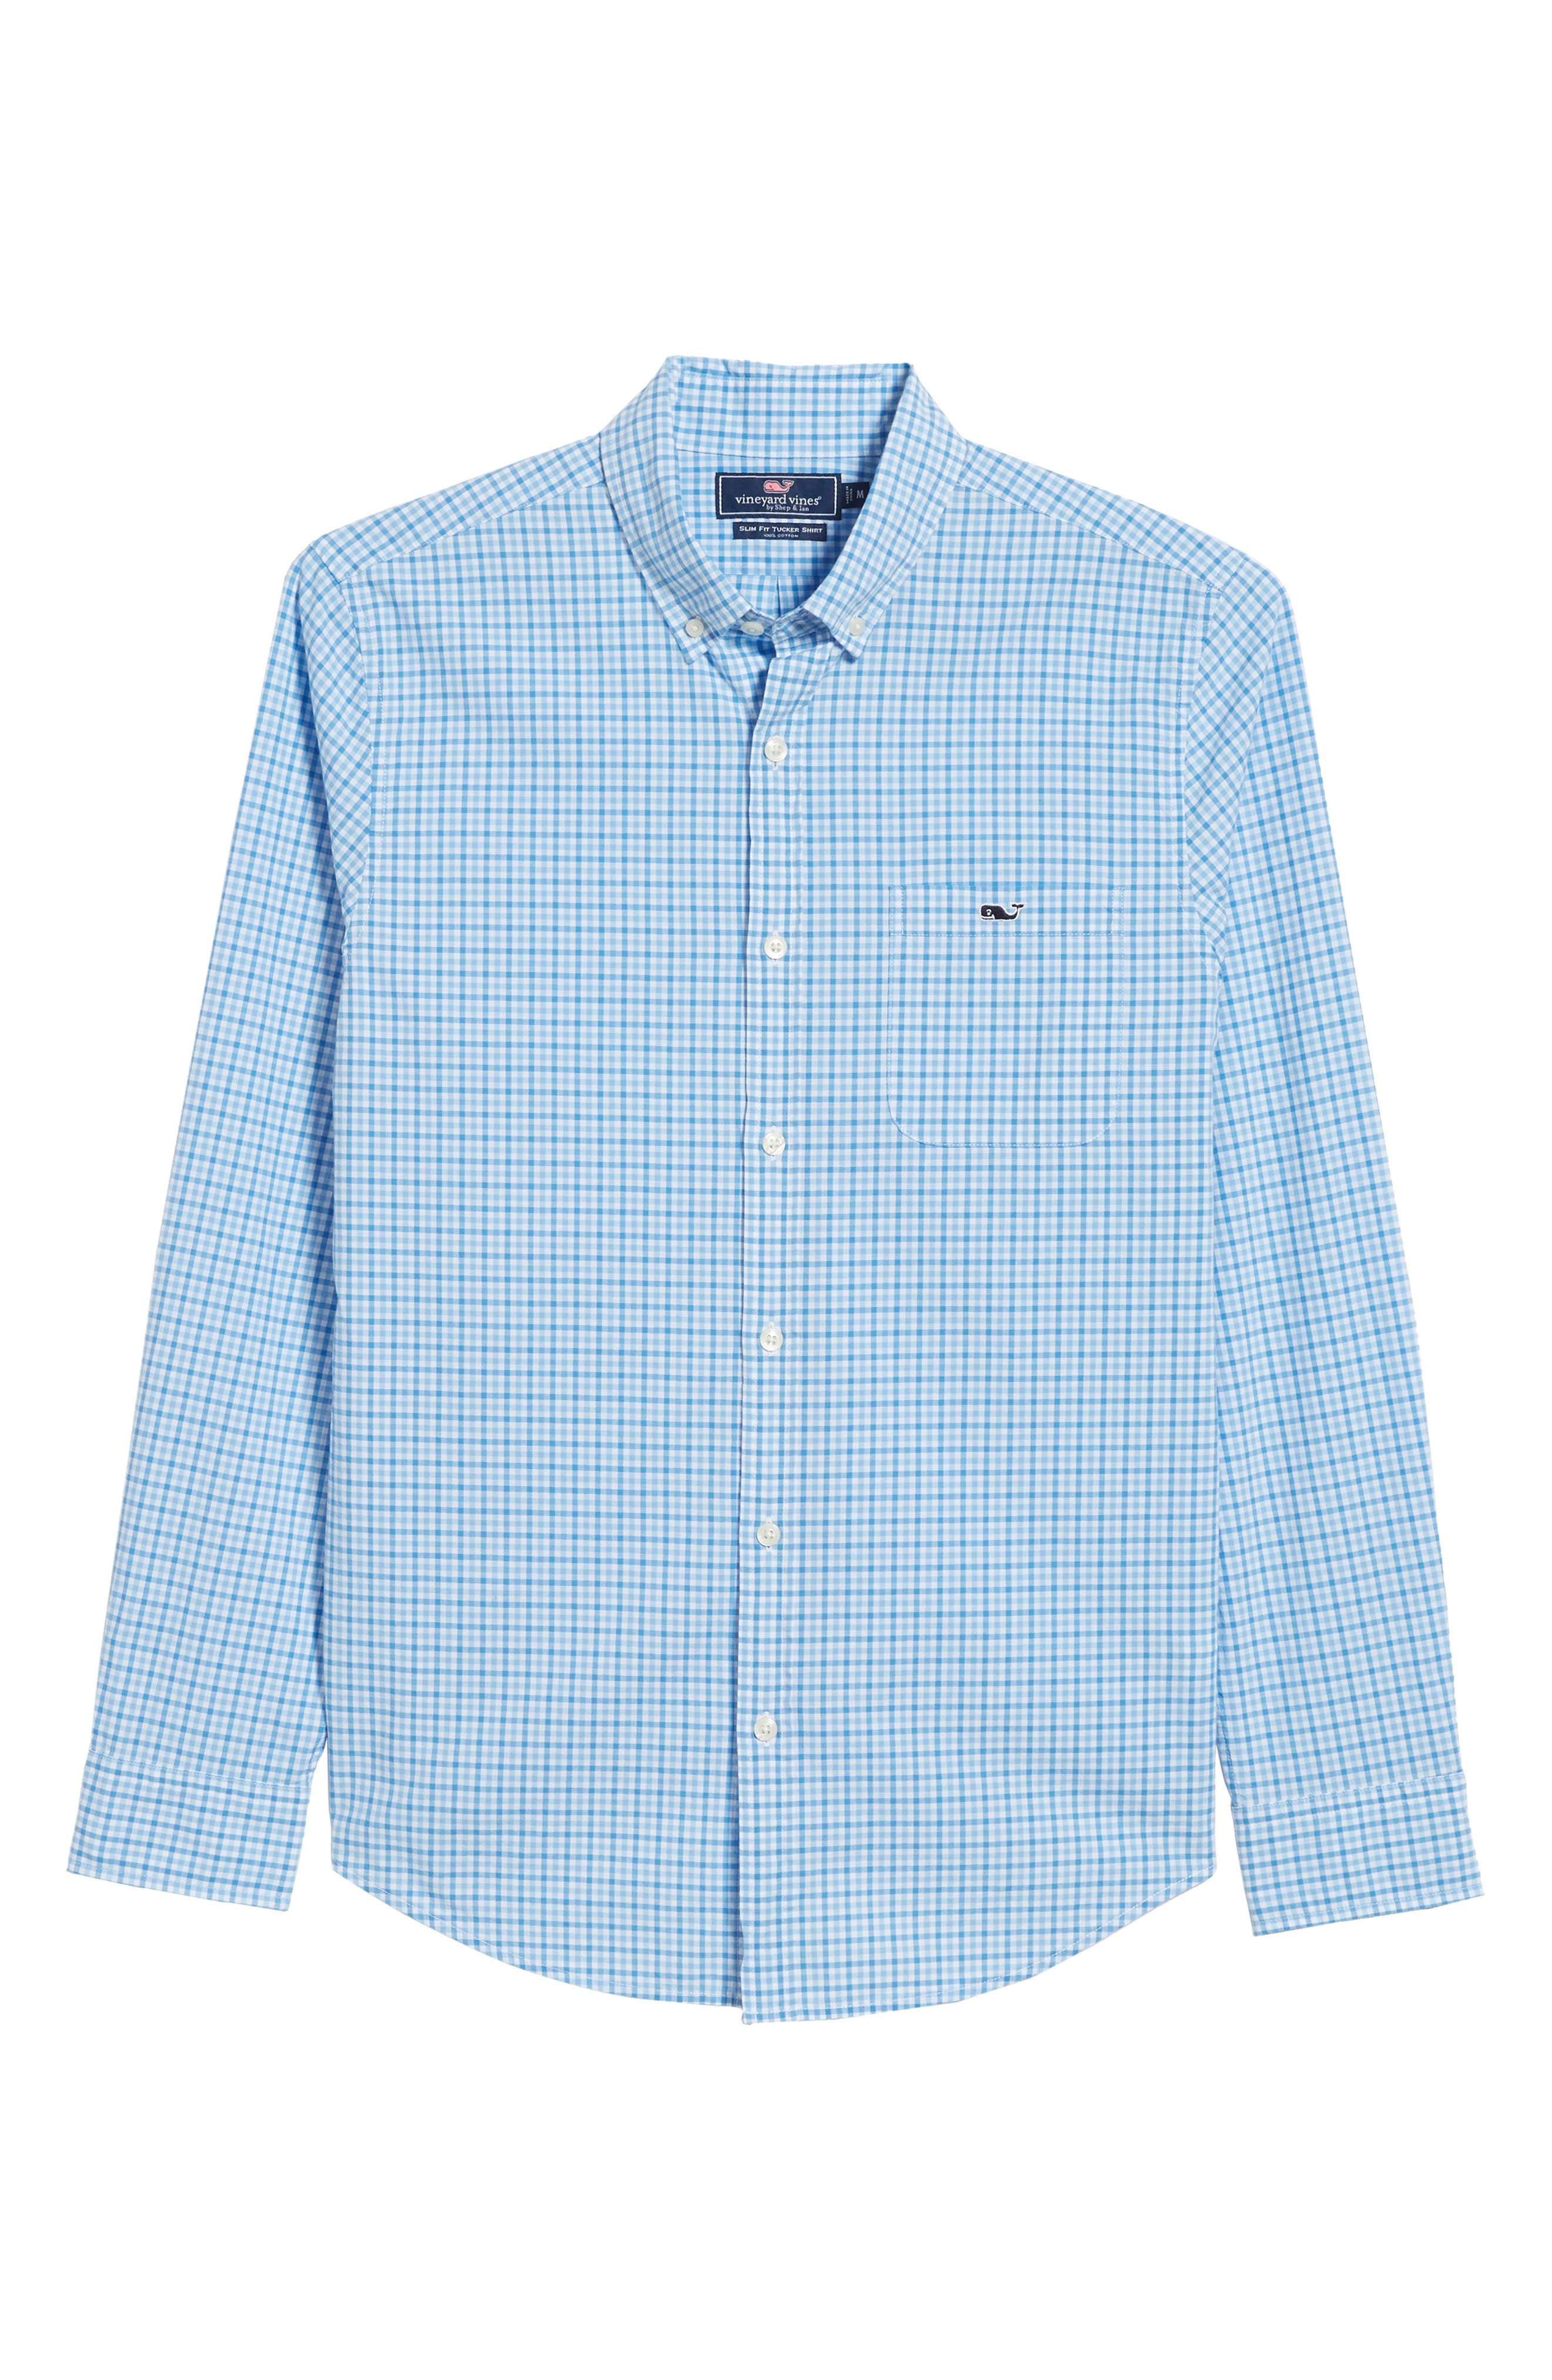 Tipsy Turtle Check Slim Fit Sport Shirt,                             Alternate thumbnail 6, color,                             Harbor Cay